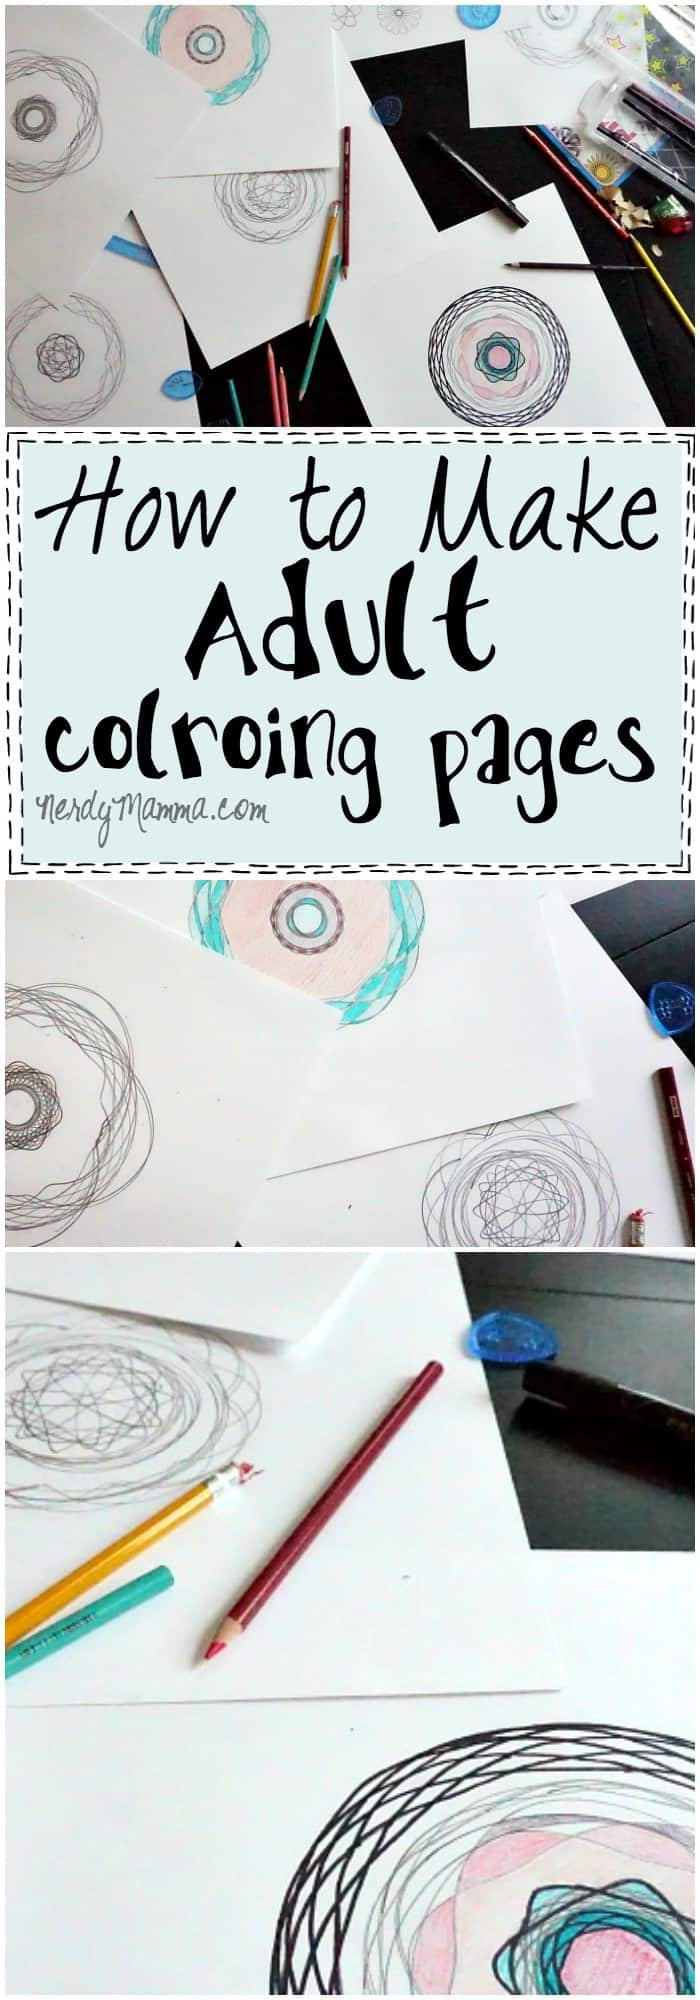 I love this tutorial for how to make adult coloring pages for yourself! It's so easy and kinda fun looking. LOL!